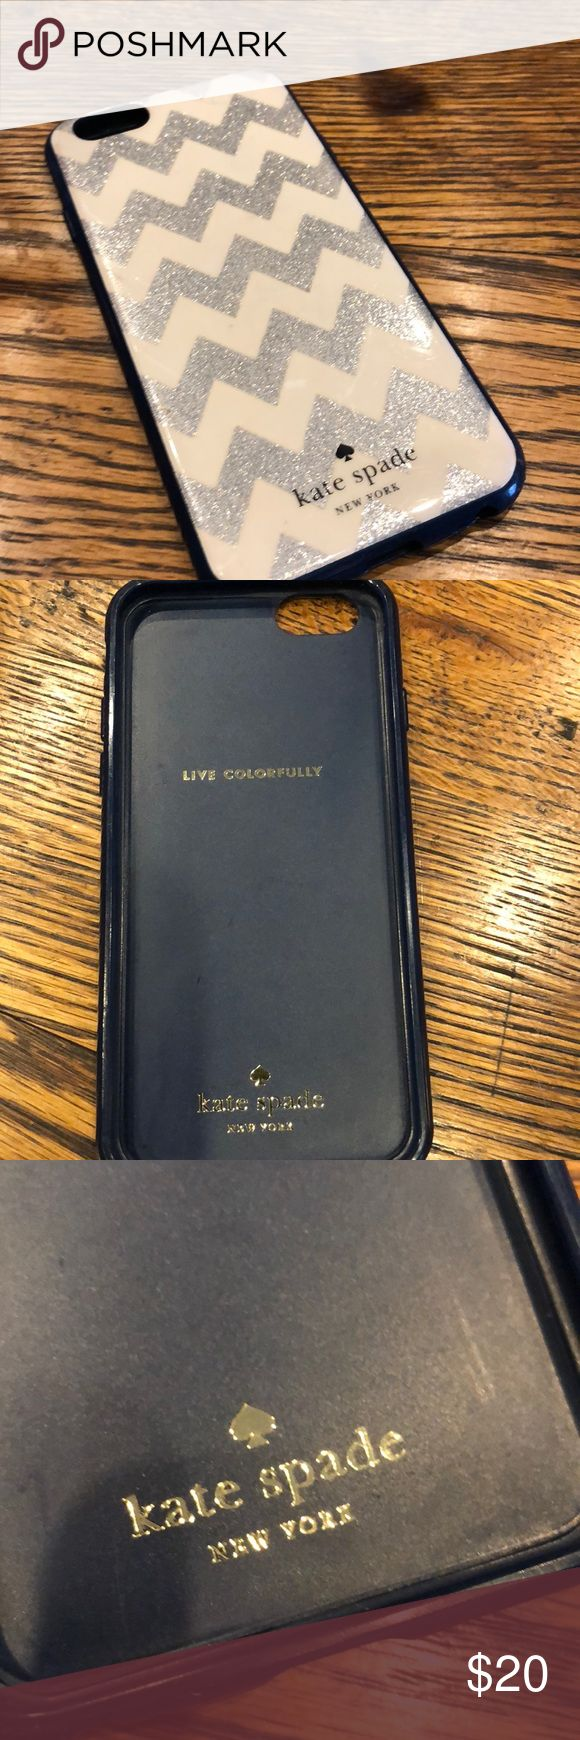 Kate Spade case for iPhone 6s Shows wear and I would still be using it if I didn't need a new phone!  Priced for you to love! kate spade Accessories Phone Cases